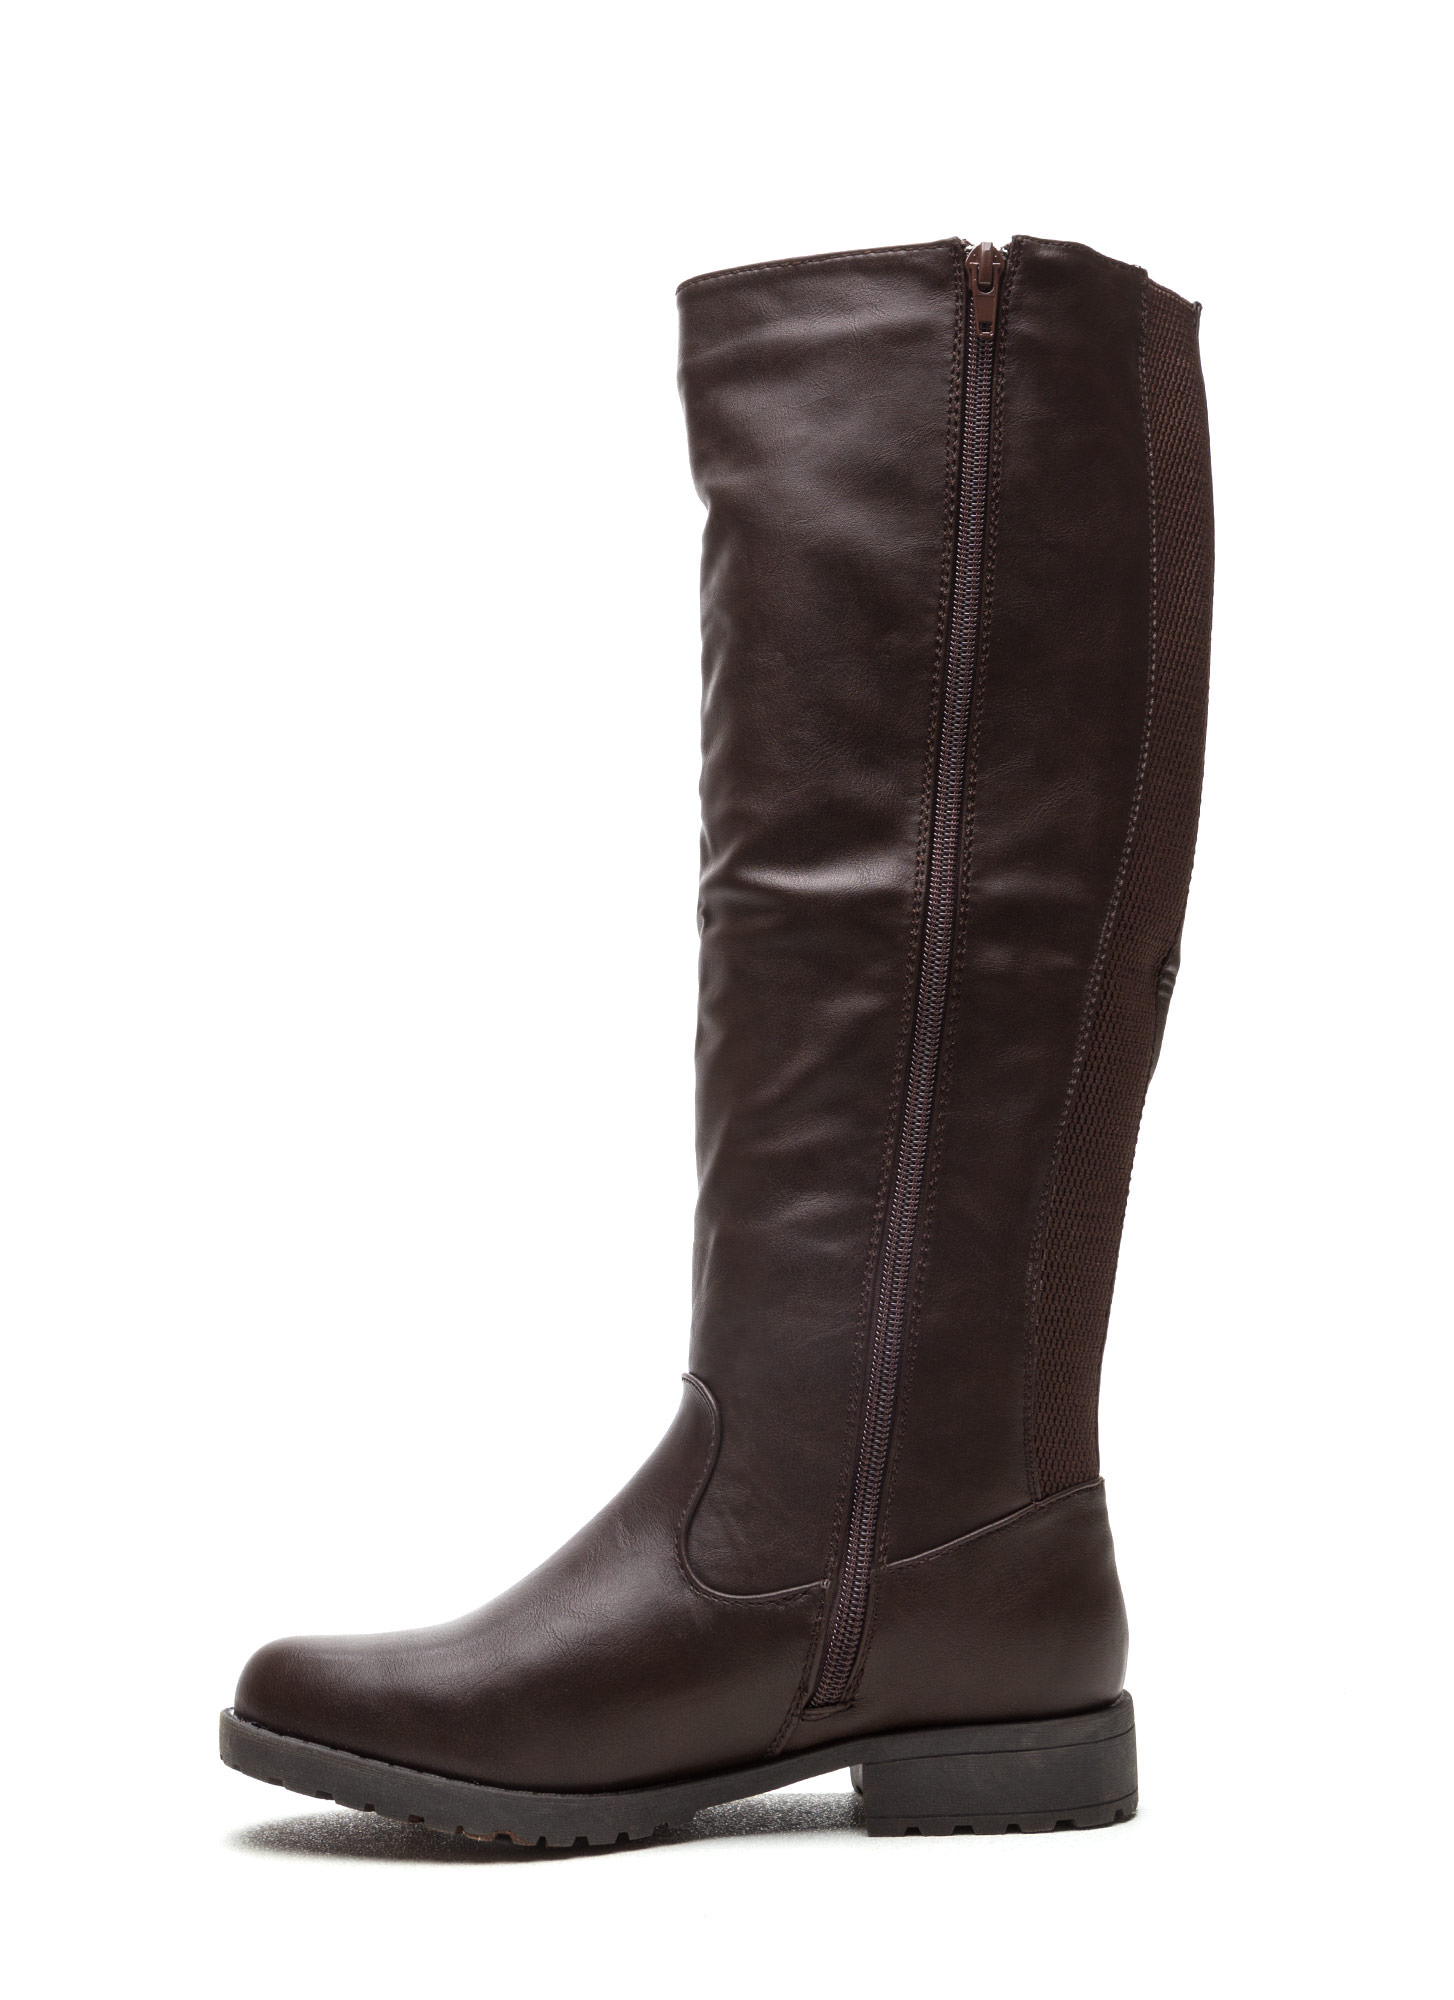 They're Everything Mixed Media Boots BROWN